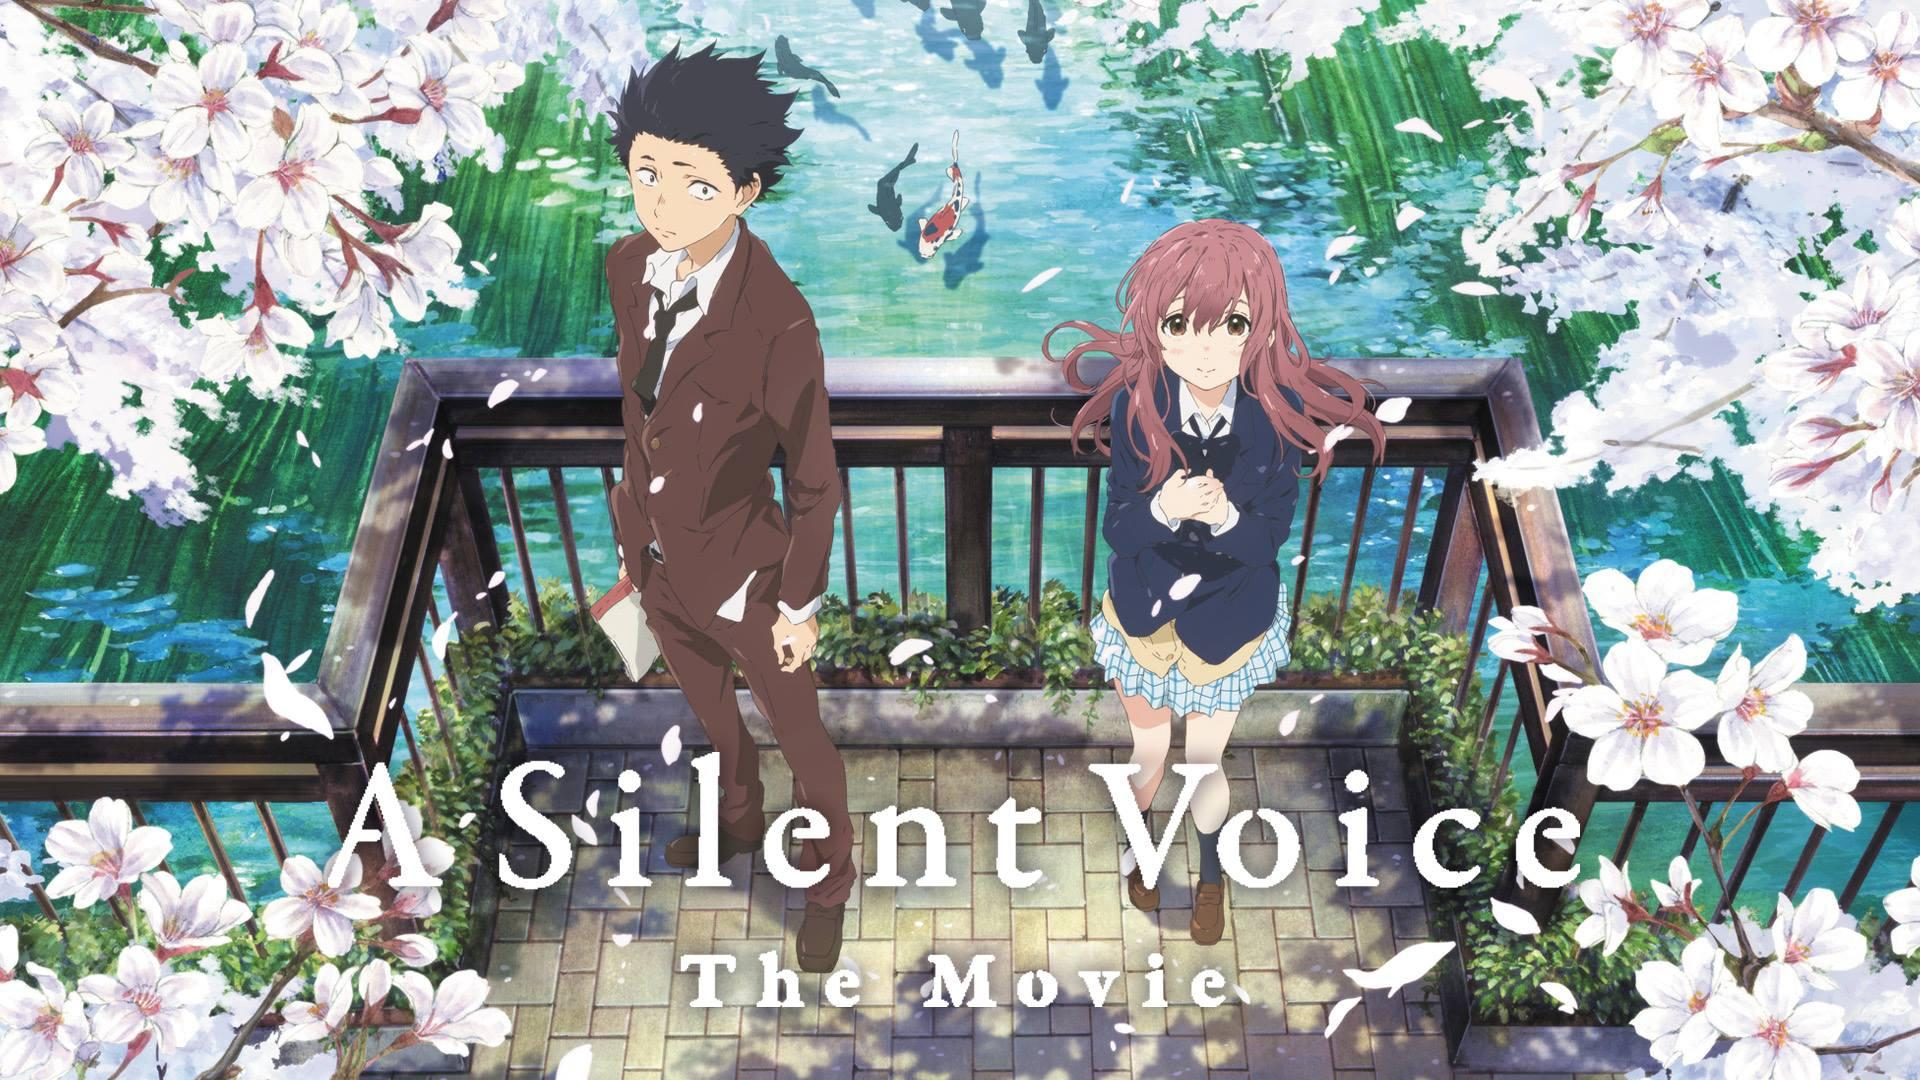 Download A Silent Voice Wallpaper, HD Backgrounds Download ...